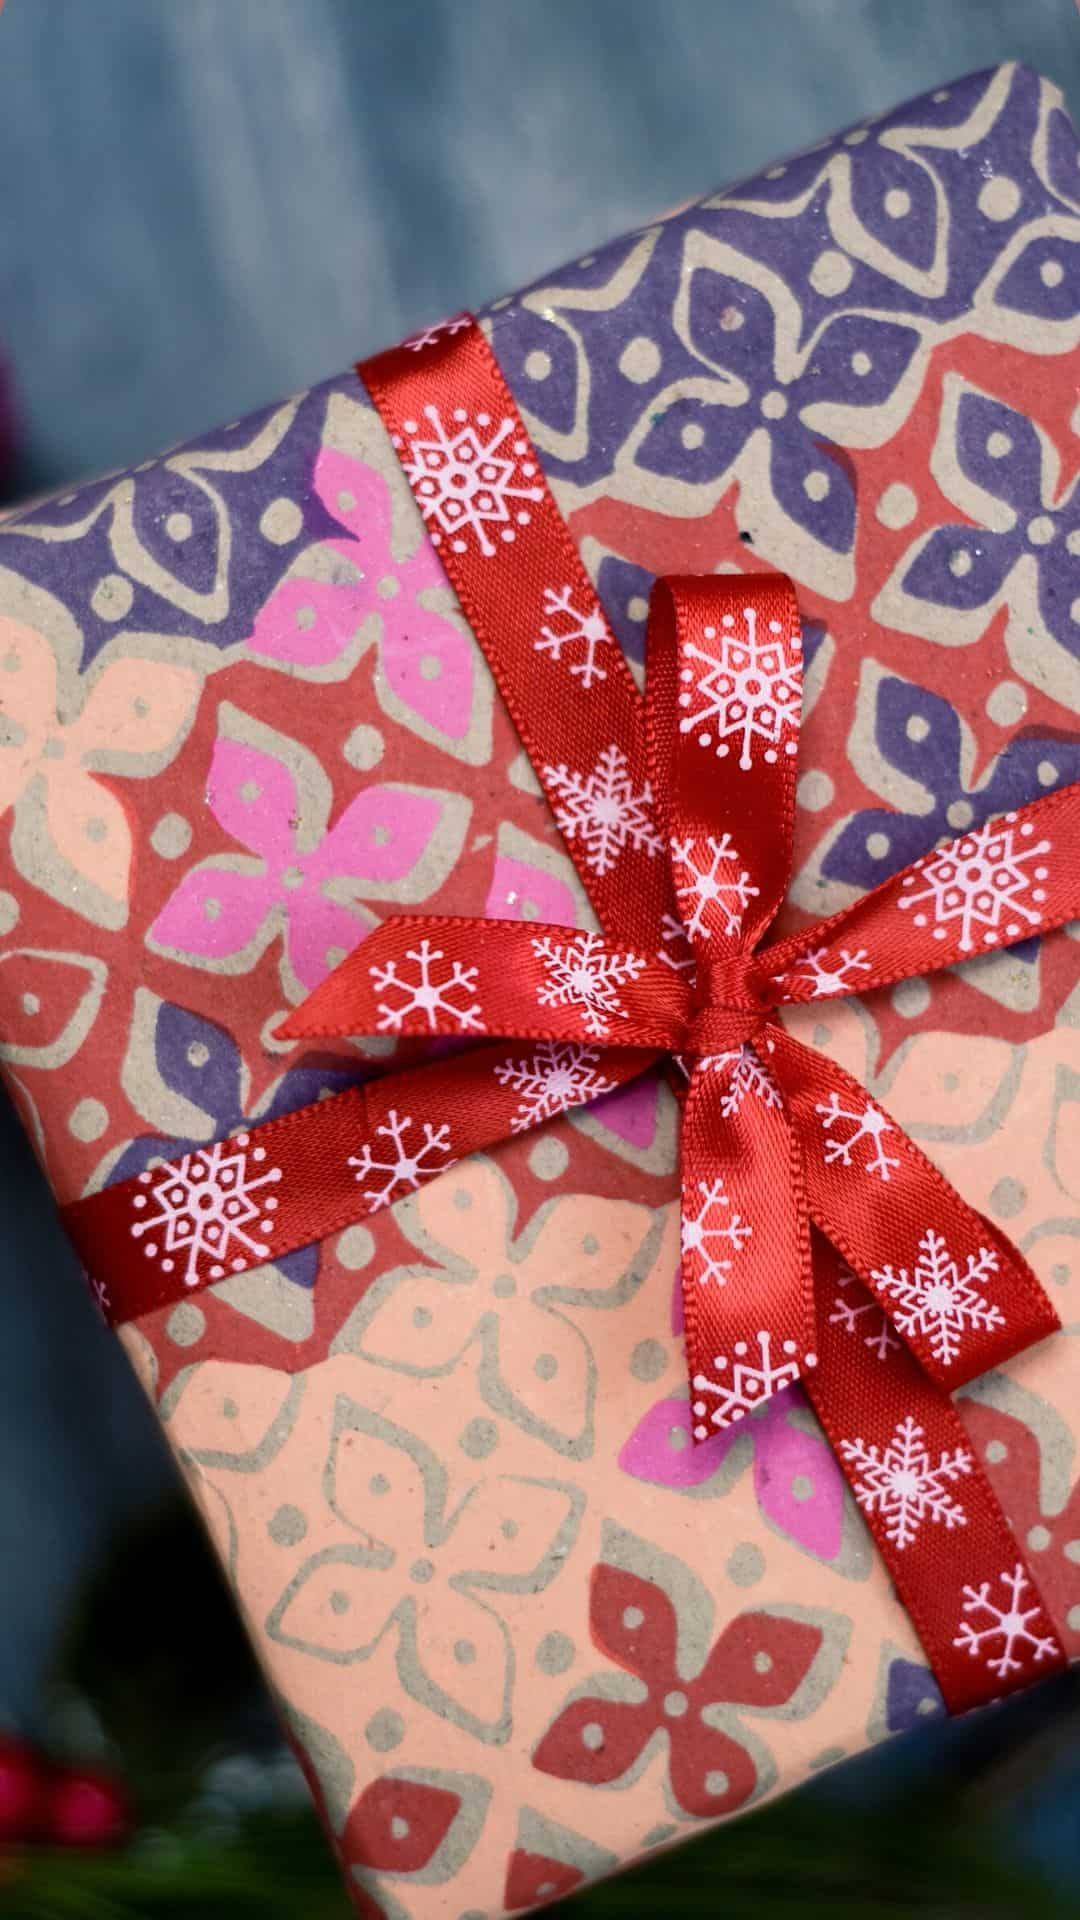 Christmas Wallpapers For iPhone Wrapping Paper